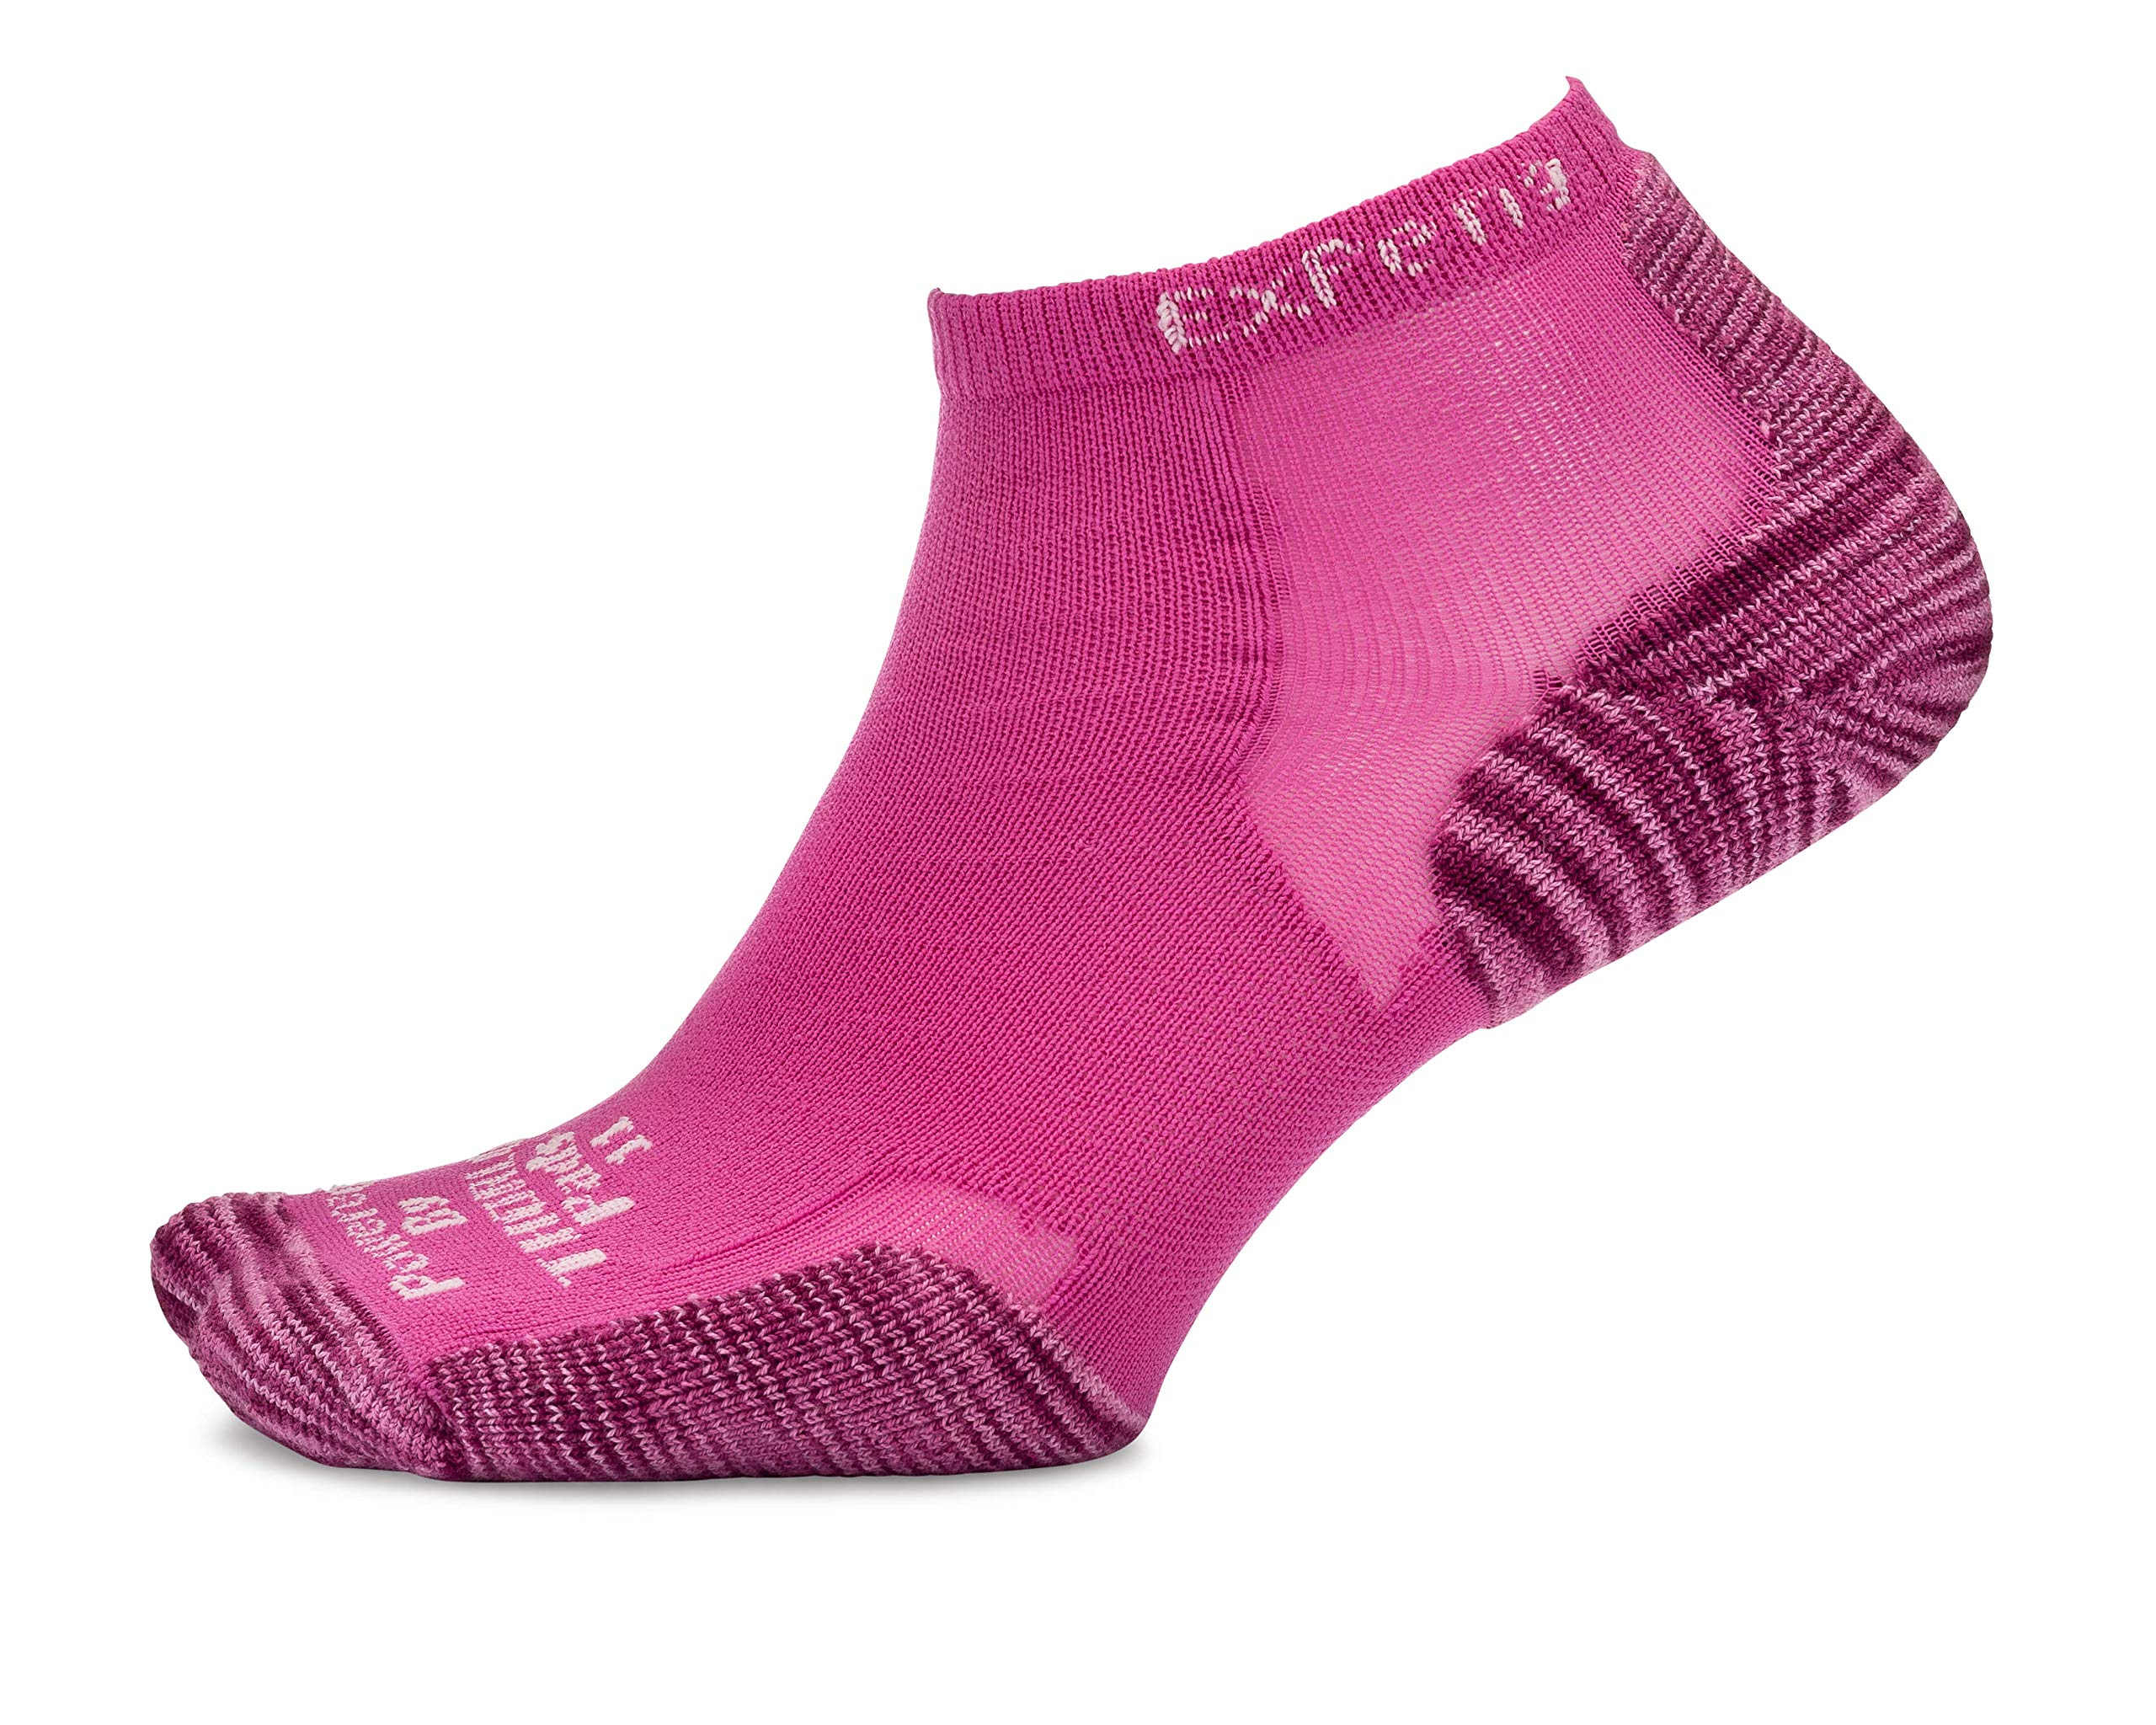 Thorlos Experia XCCU Thin Cushion Running Low Cut Sock, Tiger Paw Rose Violet, XS by Thorlos Experia